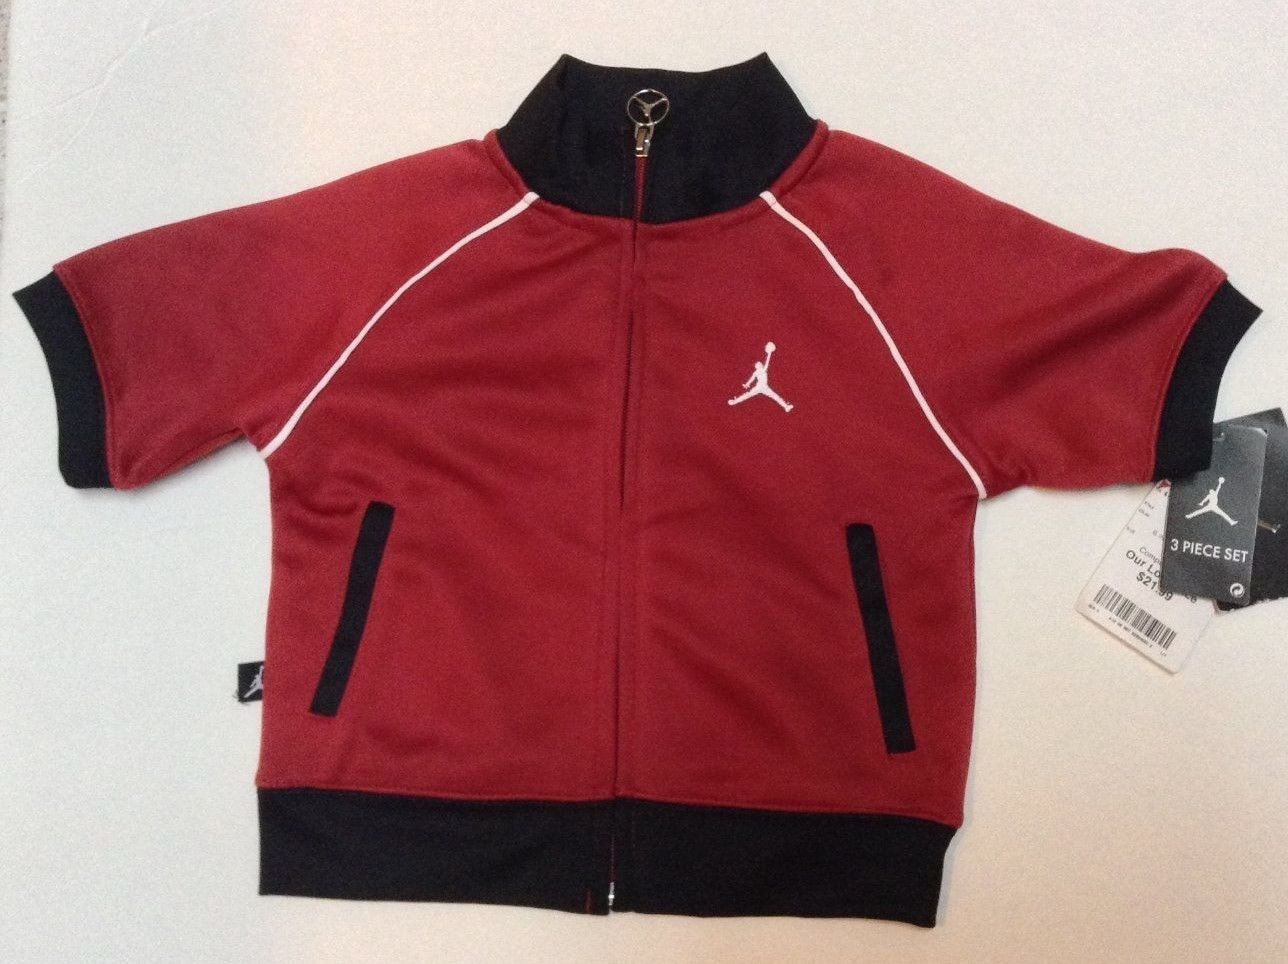 Boys Infants Short Sleeve Sport Jacket Red Black NWT 18 months Jumpman